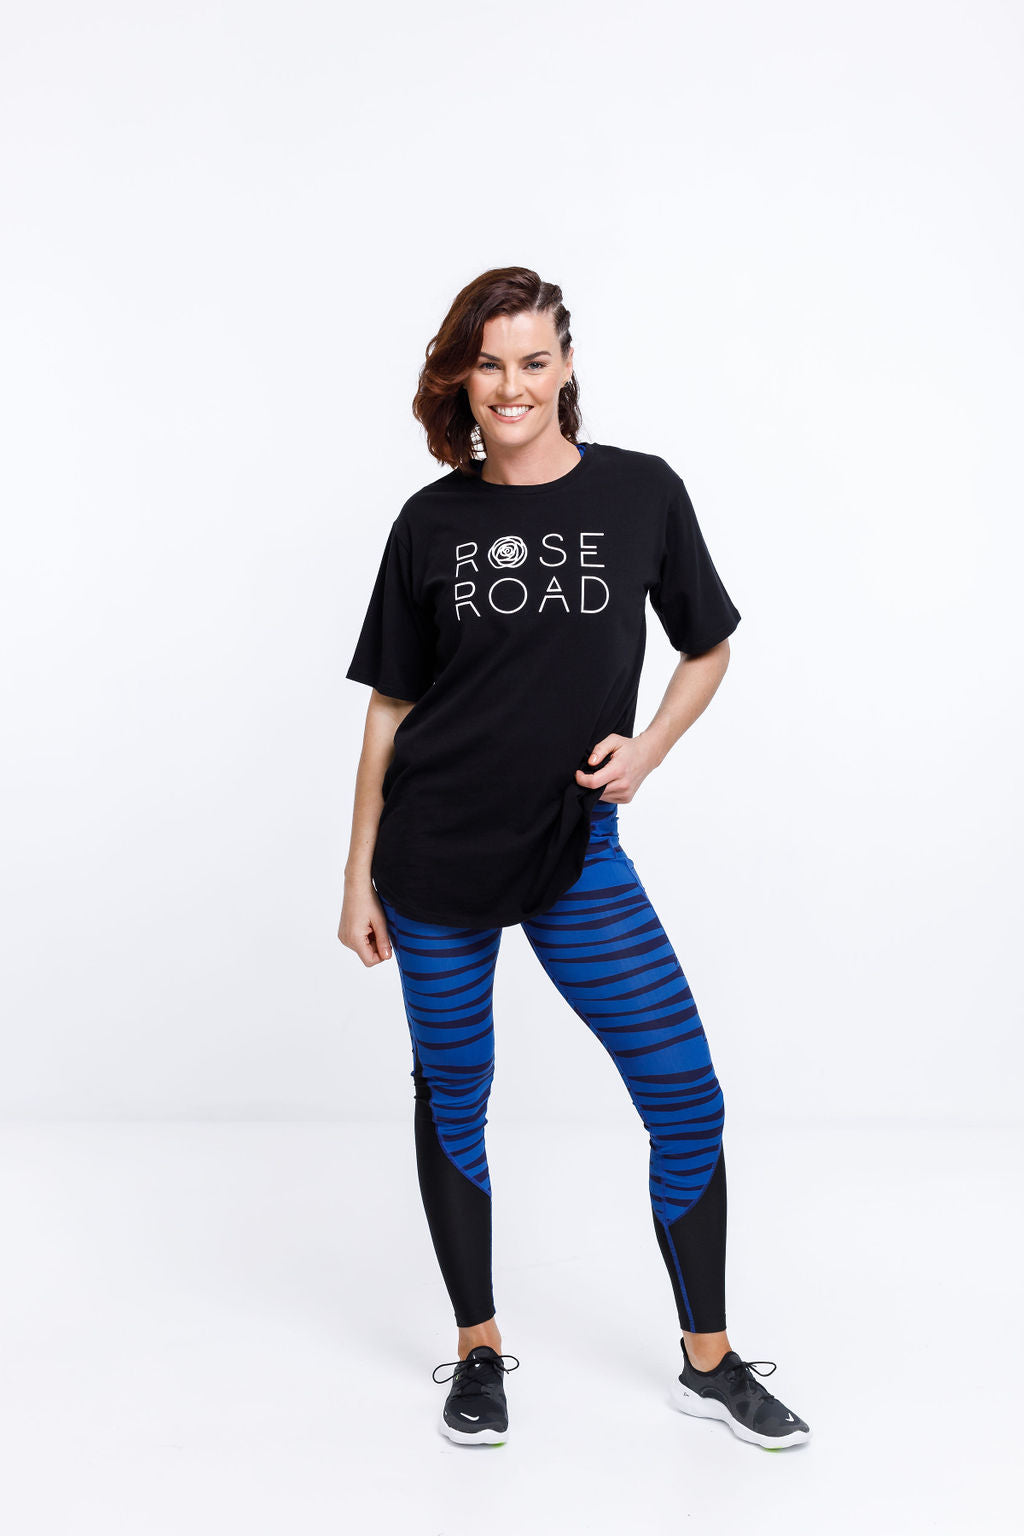 PANEL LEGGINGS - Blue Offbeat Stripe & Black Mesh